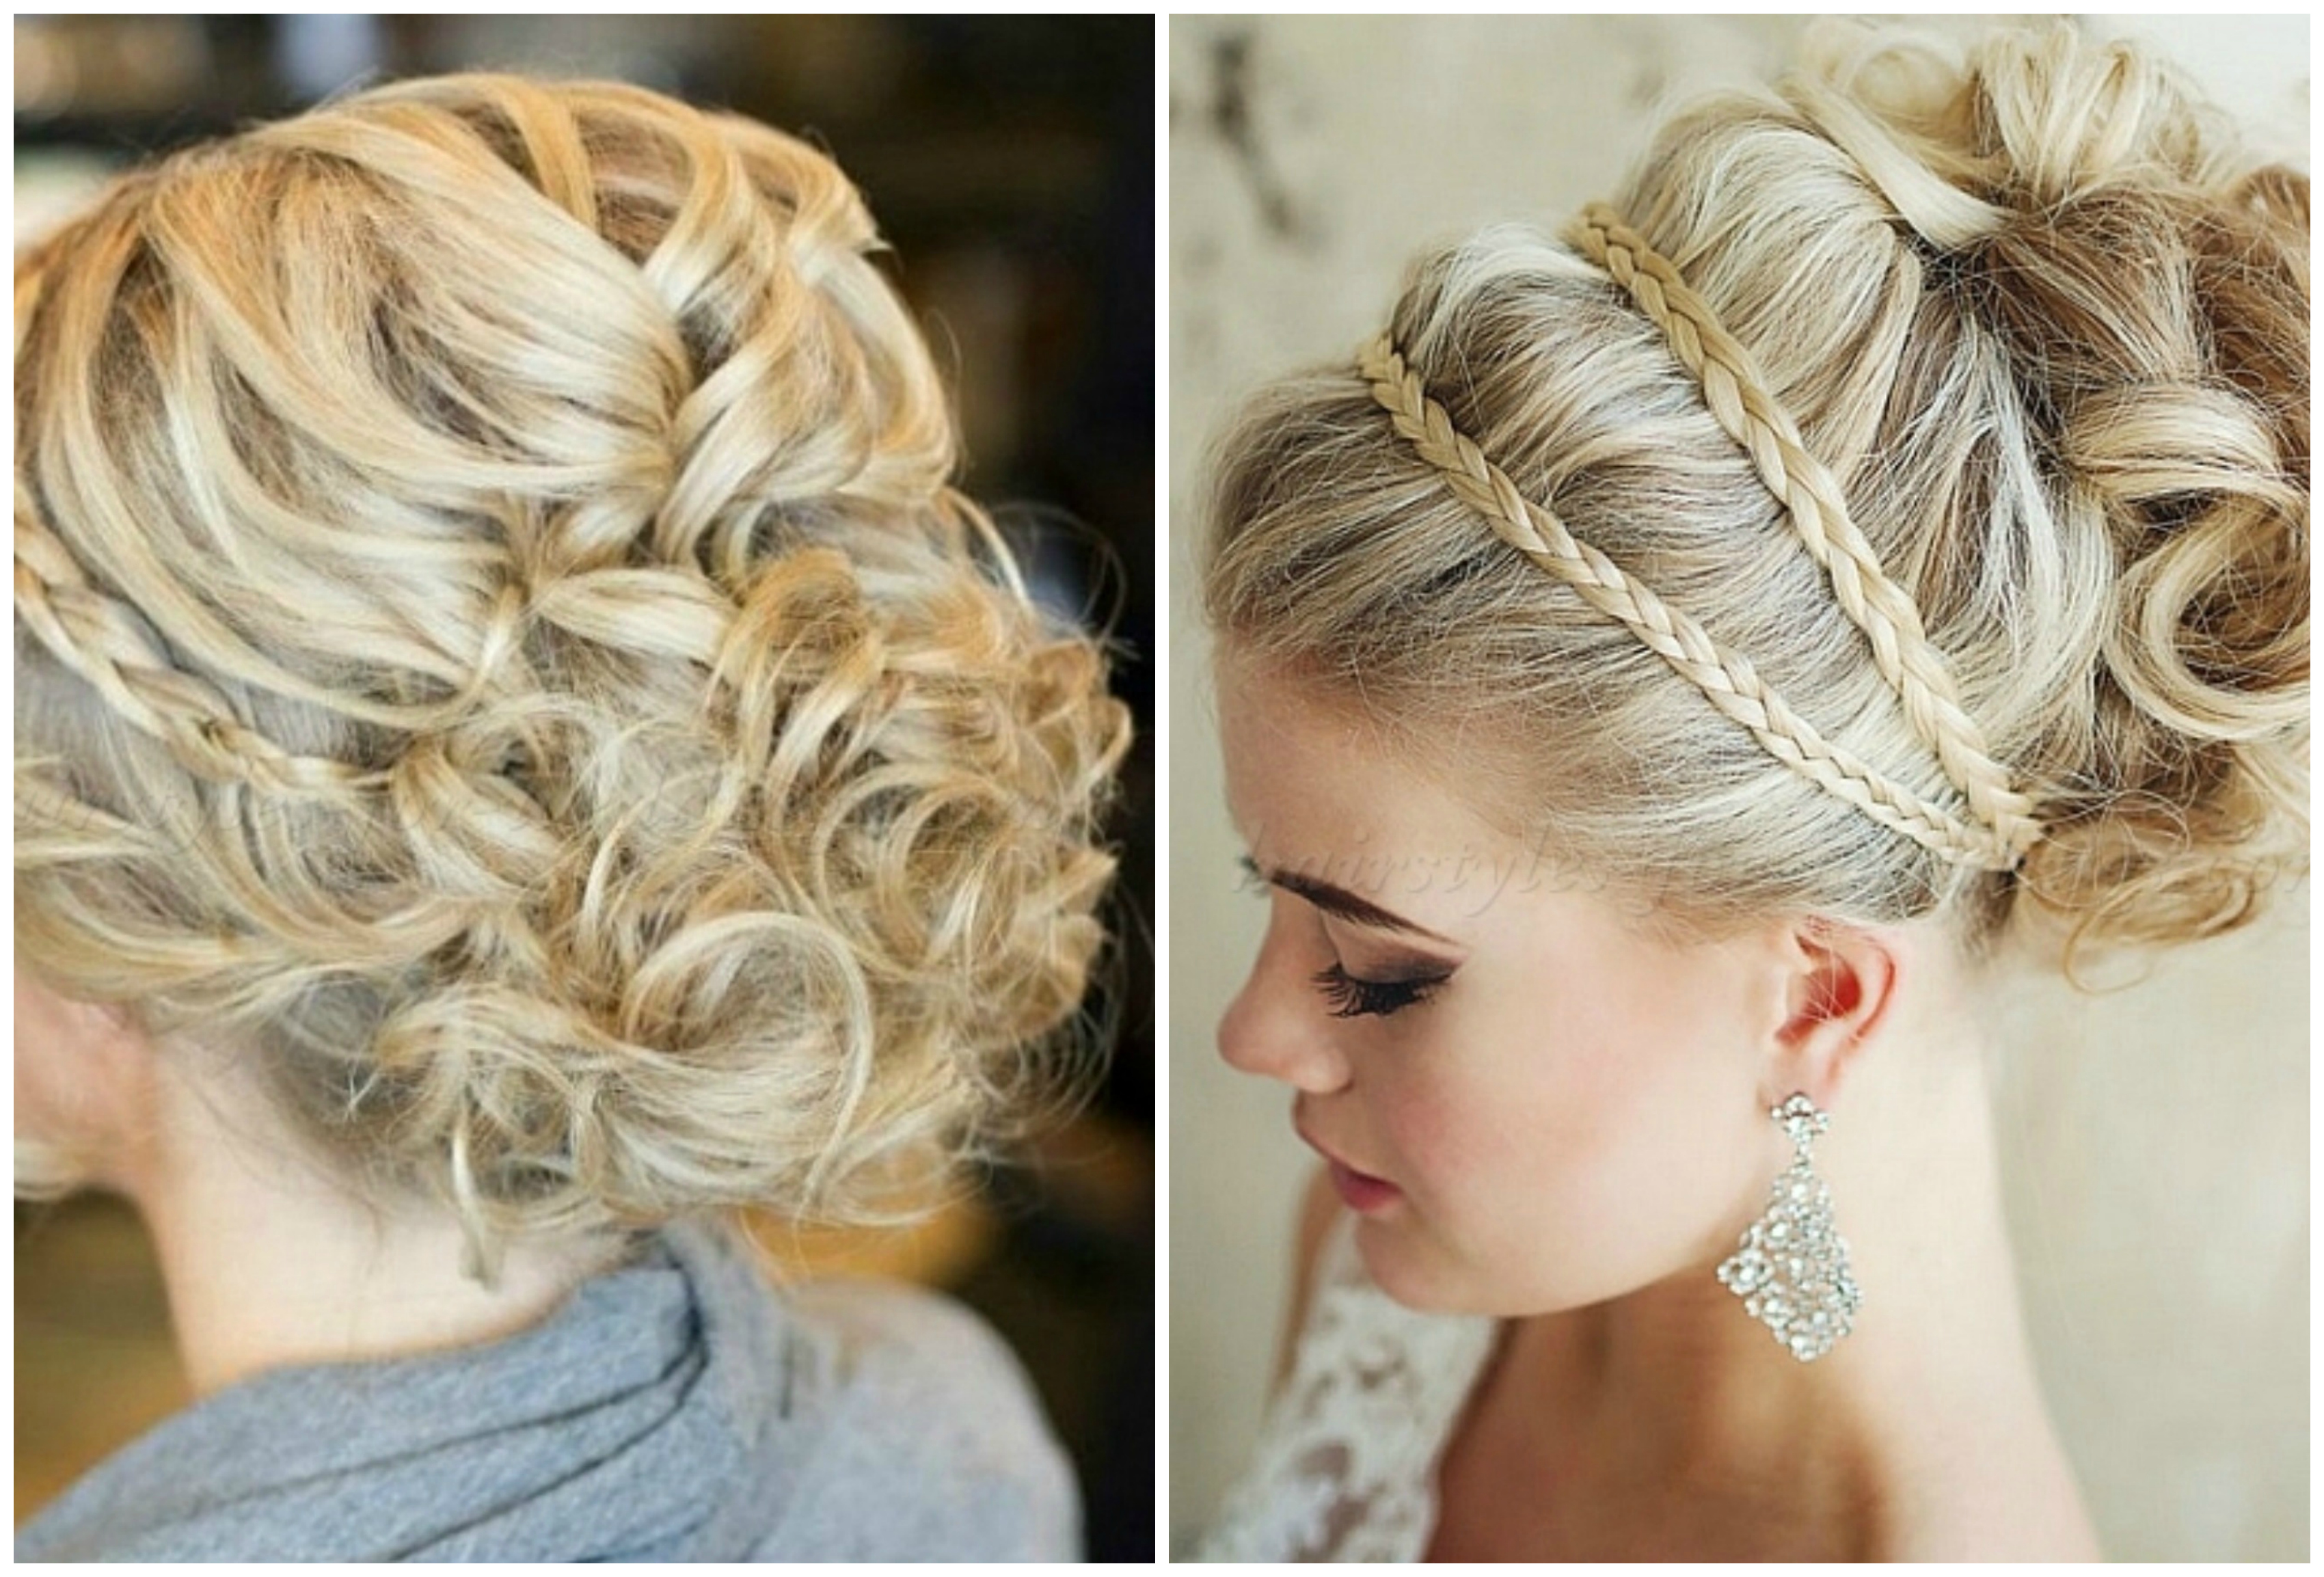 Greek Goddess With Braided Headband. Blonde Hair